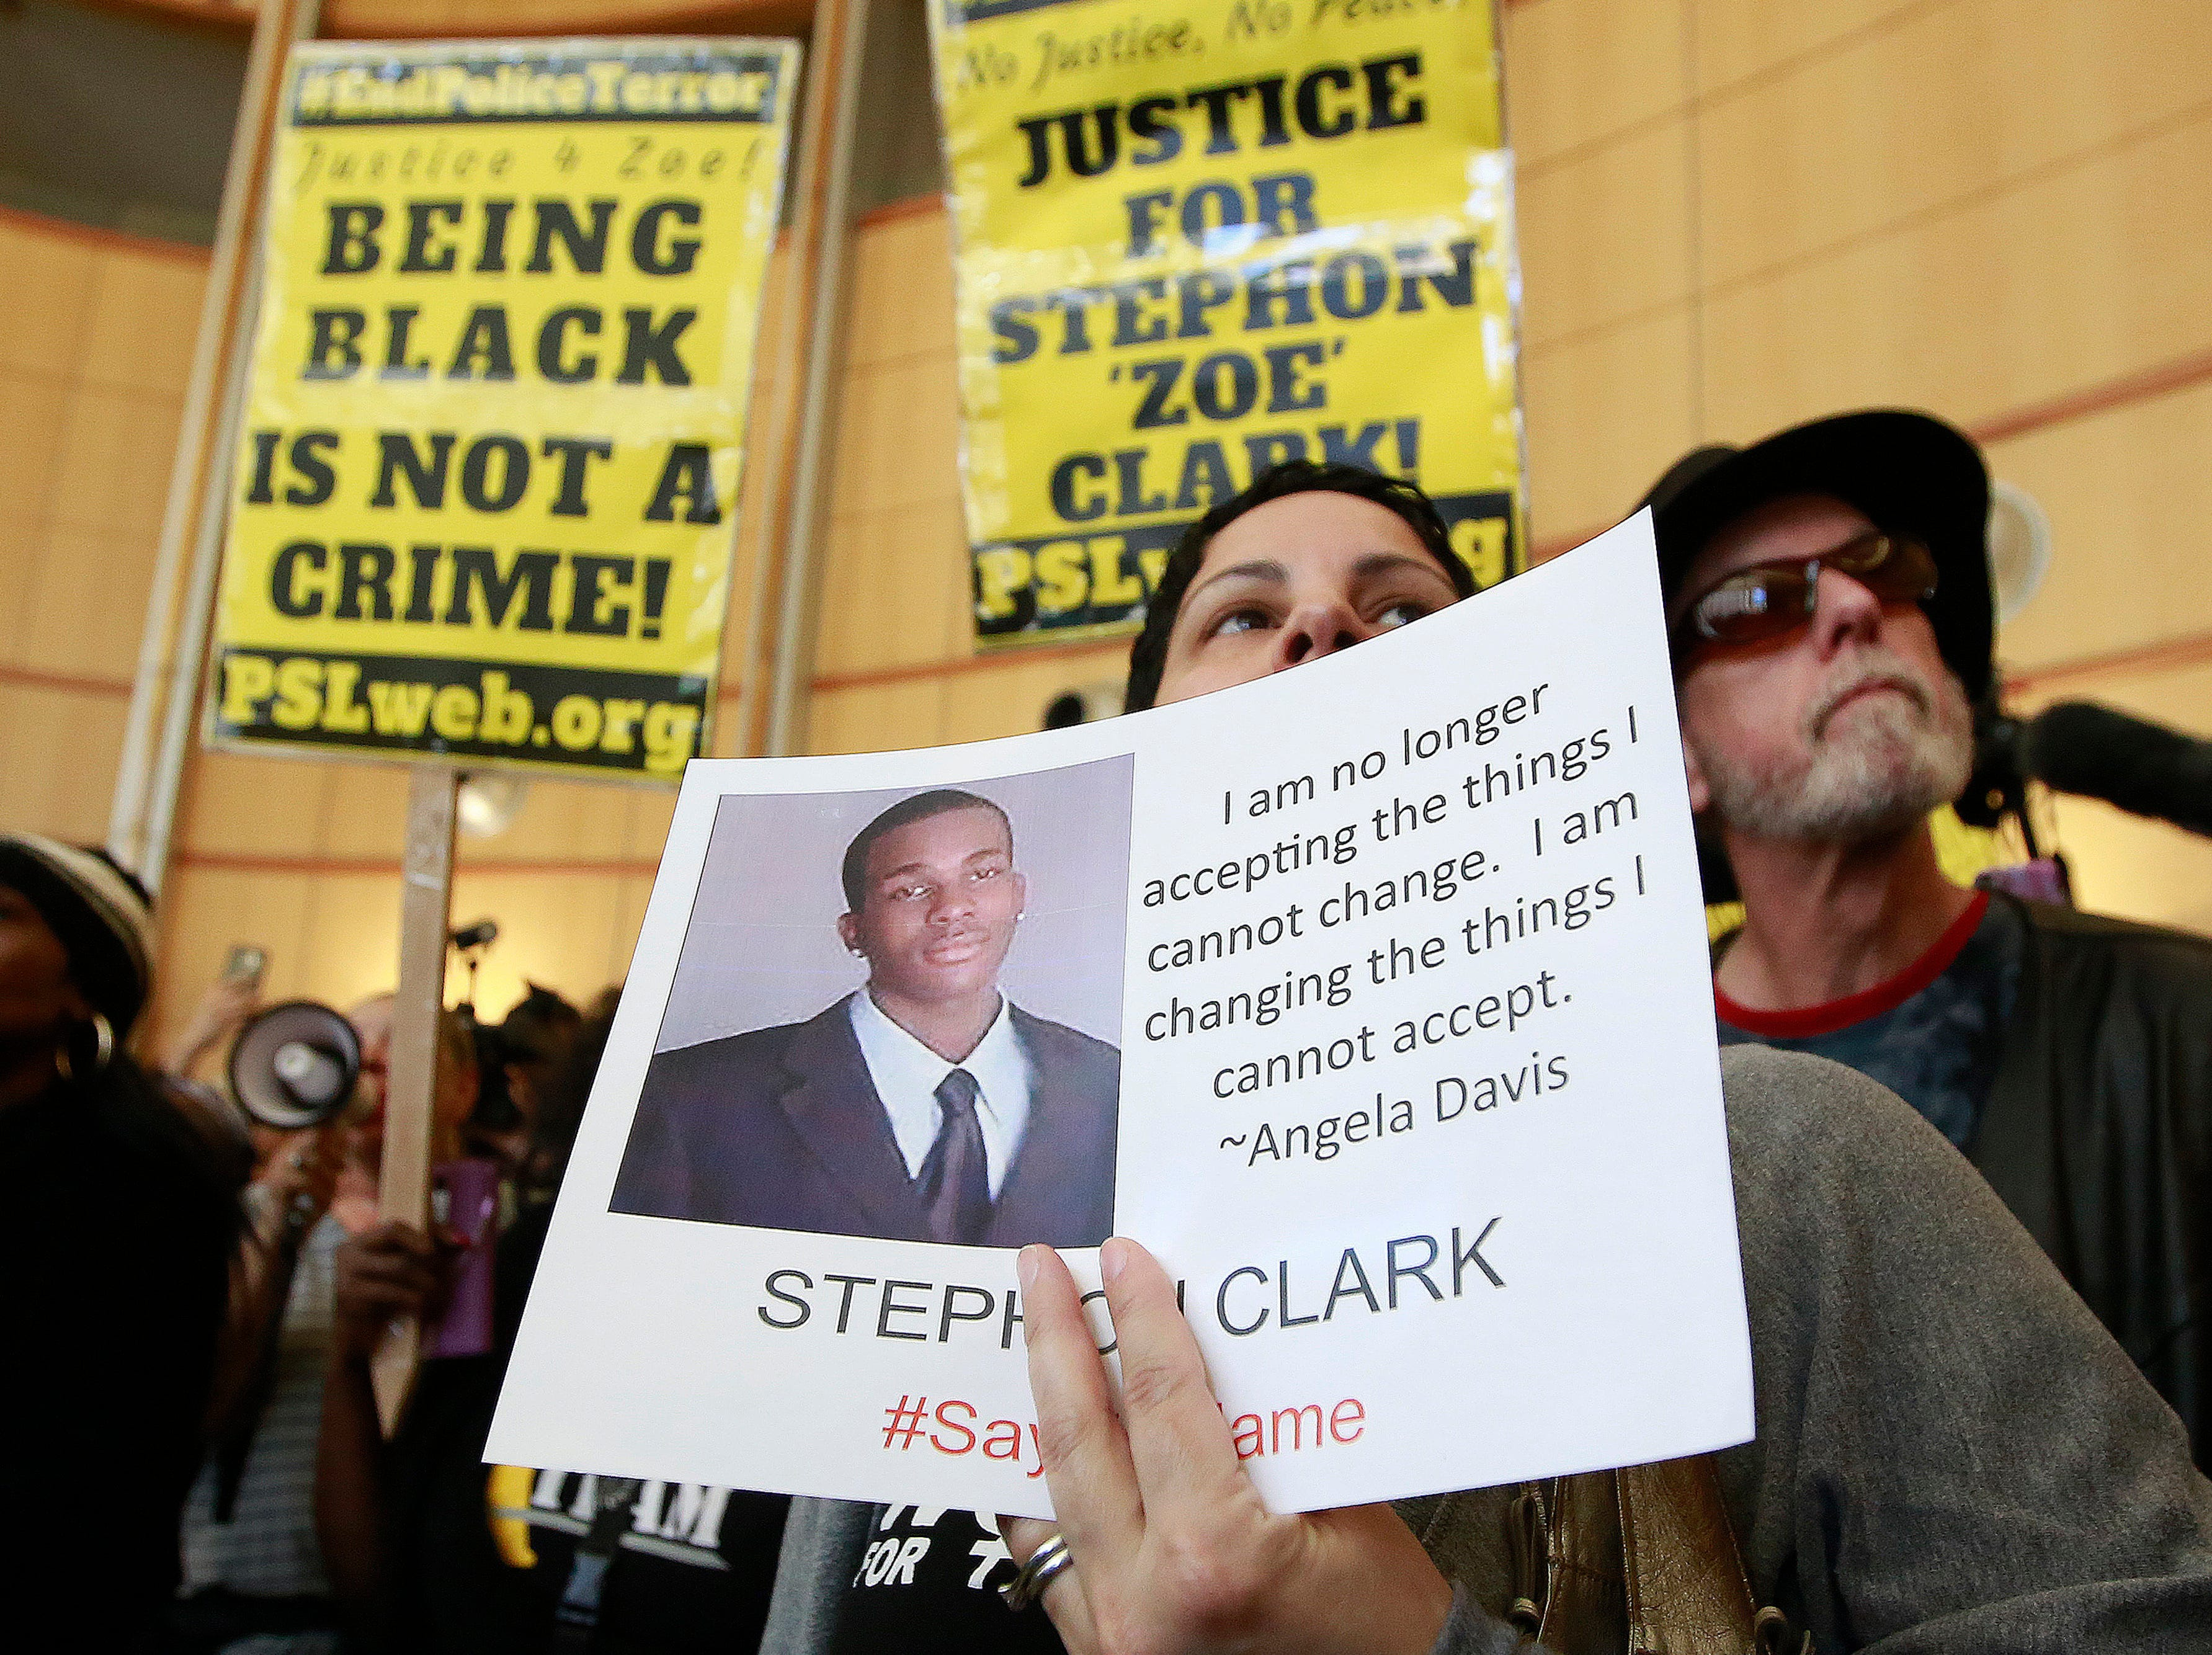 Family of Stephon Clark files $20M lawsuit against Sacramento police in shooting death